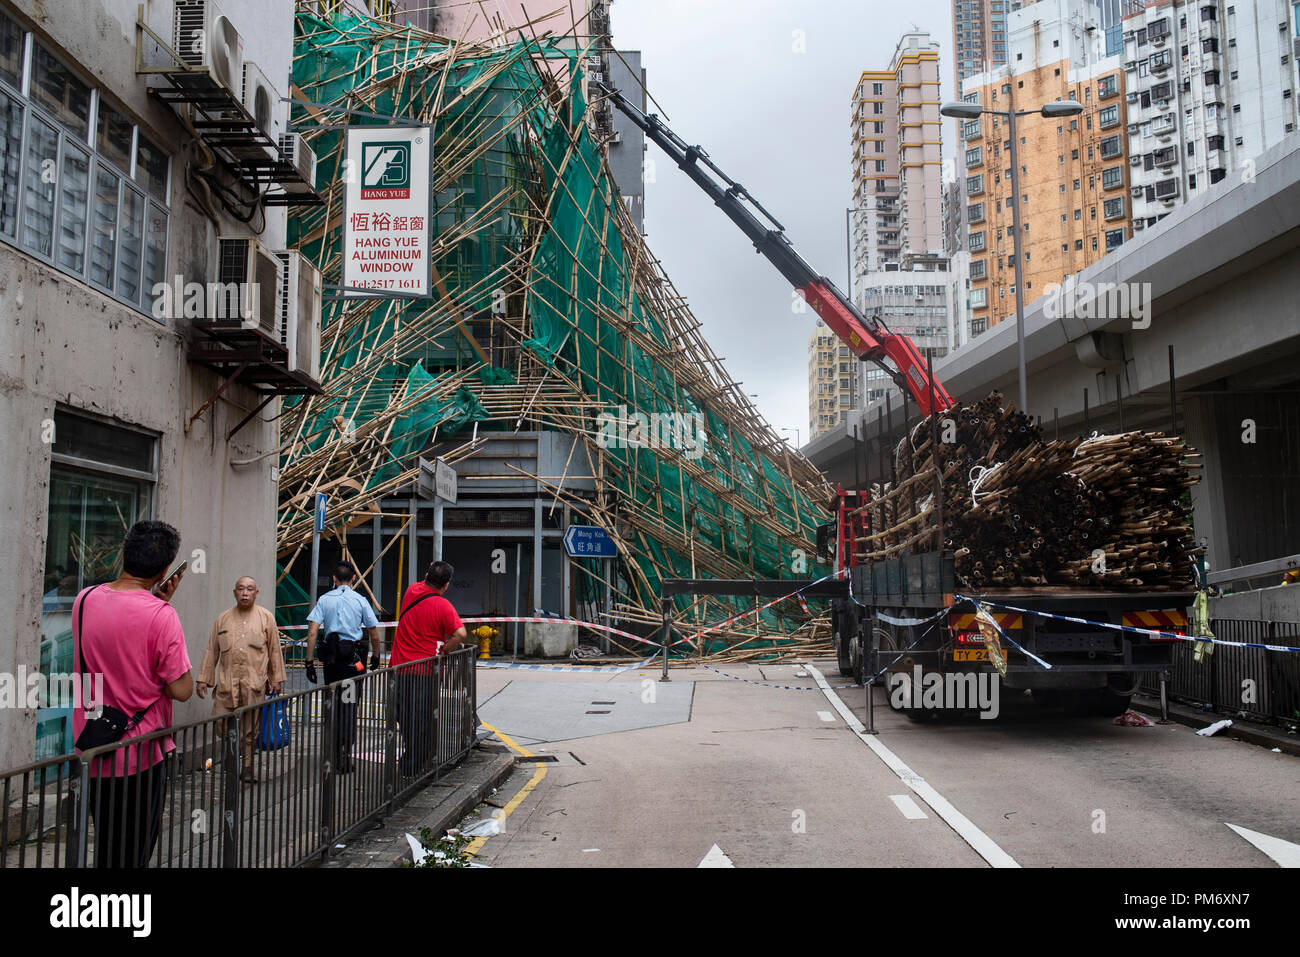 Workers remove bamboo scaffolding after it has collapse, fall and blocked the street. Super Typhoon Mangkhut aftermath is visible in most districts of Hong Kong. The super typhoon Mangkhut has passed next to Hong Kong on the 16th September causing large scale damages around the city, there are 432 people injured due to the storm with 2 still in critical condition. - Stock Image